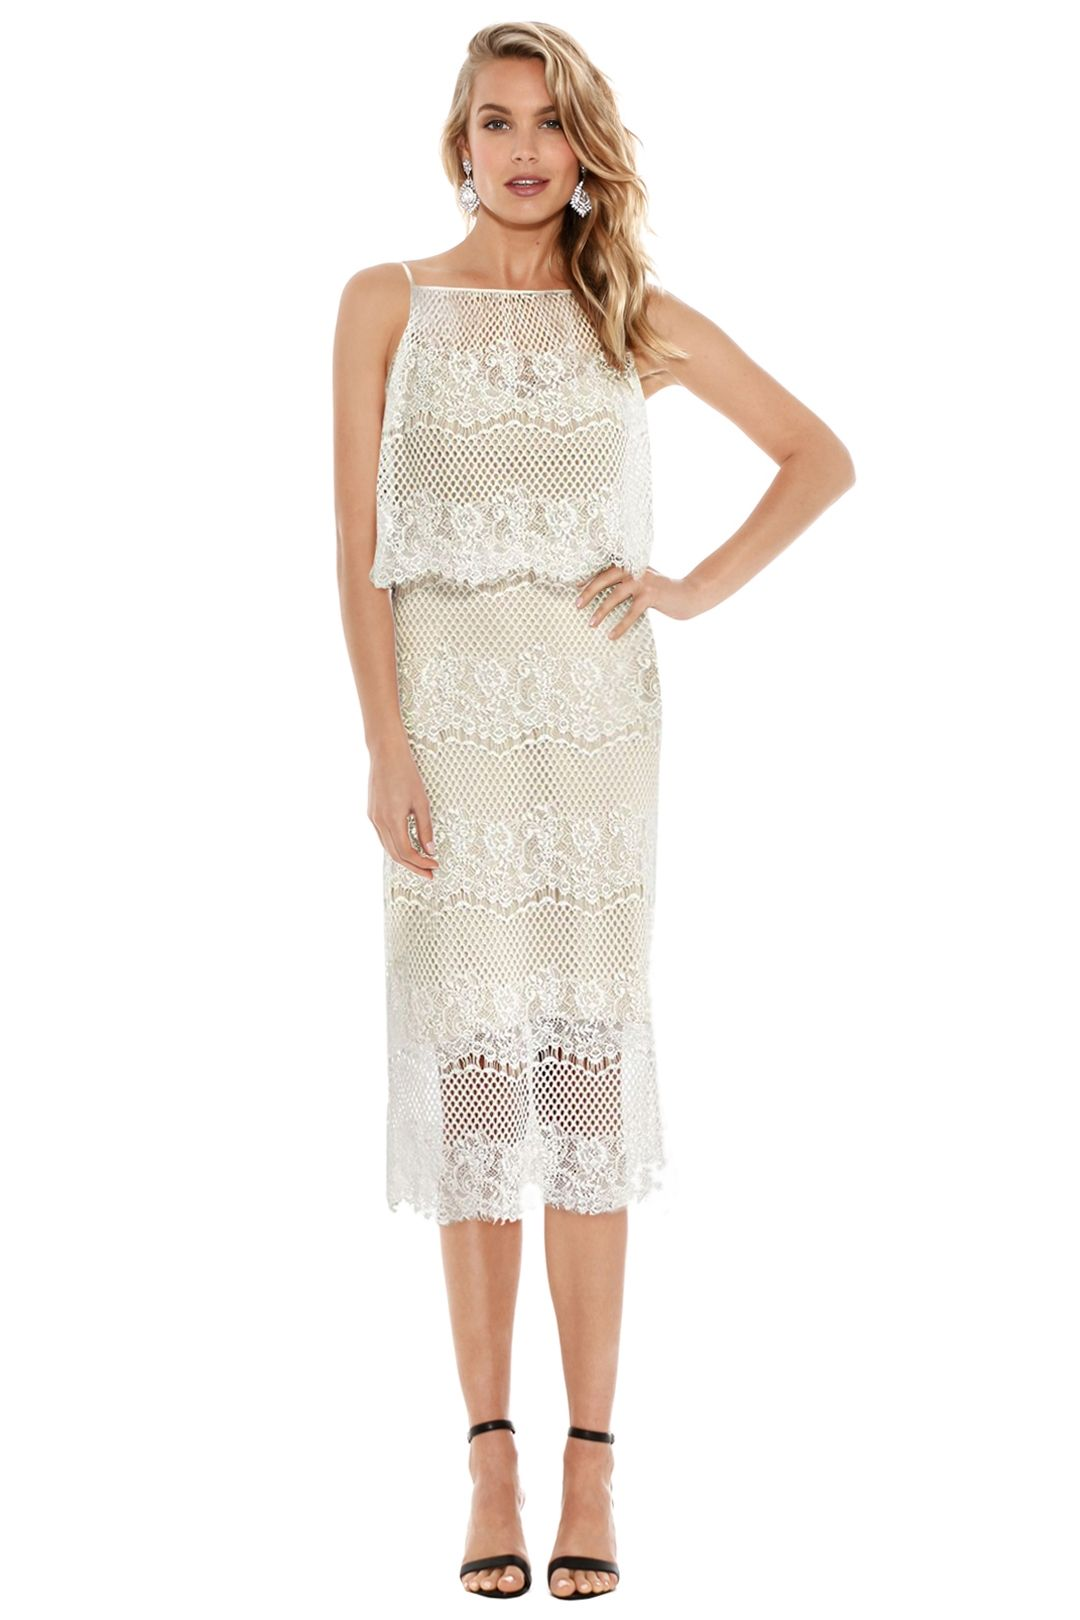 Langhem - Holly Lace Cocktail Dress - Cream - Front